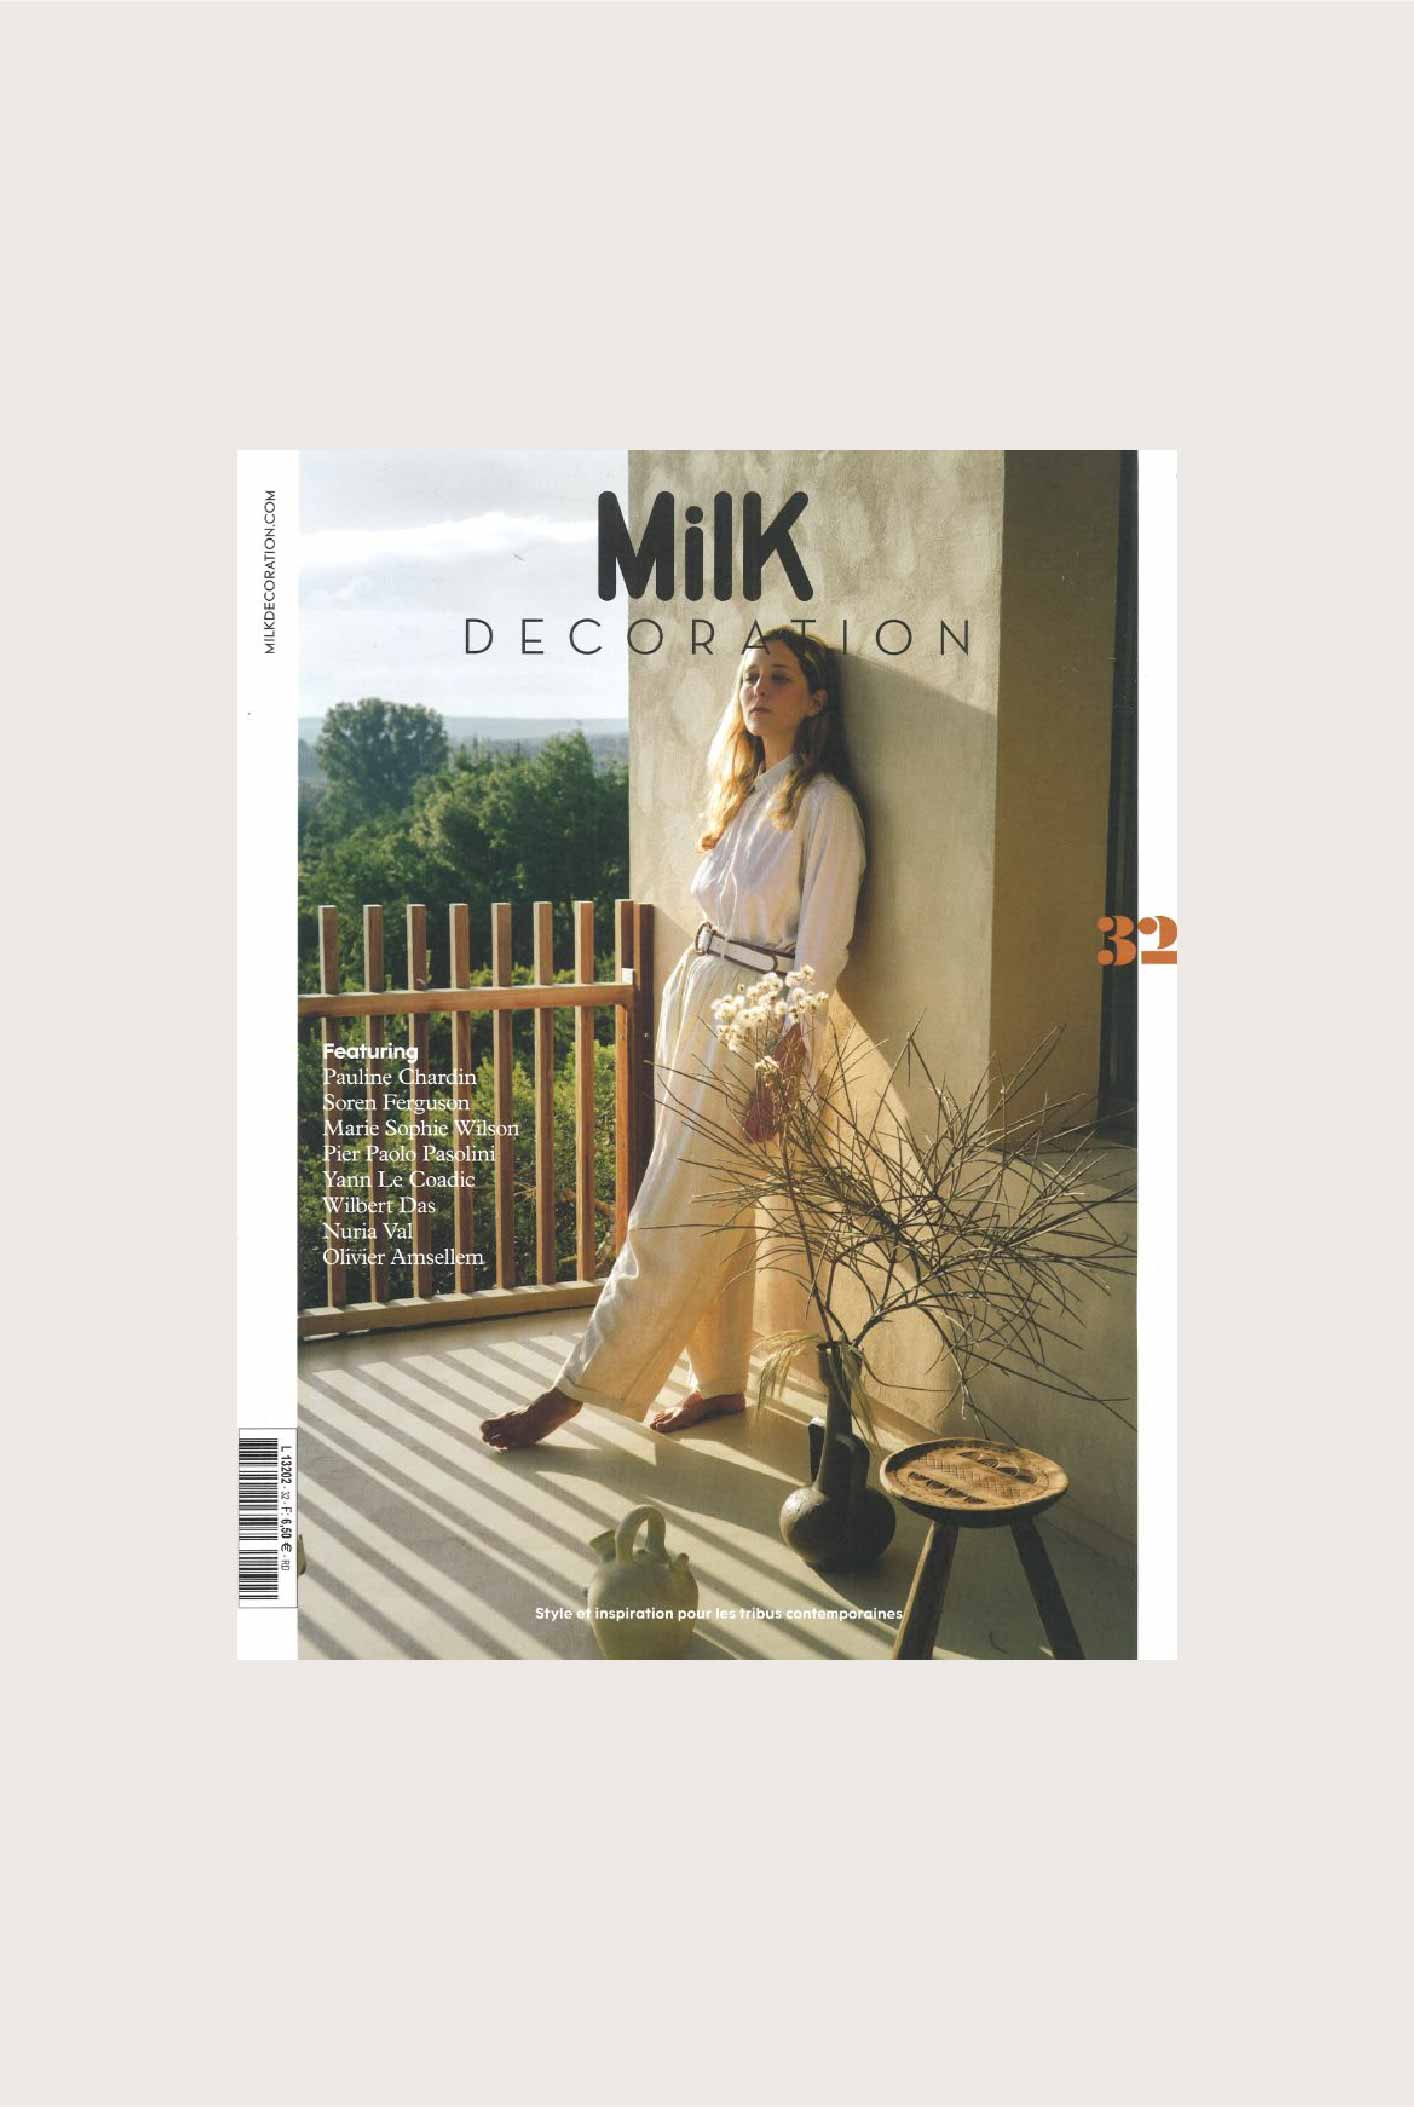 Milk Decoration Vol 32